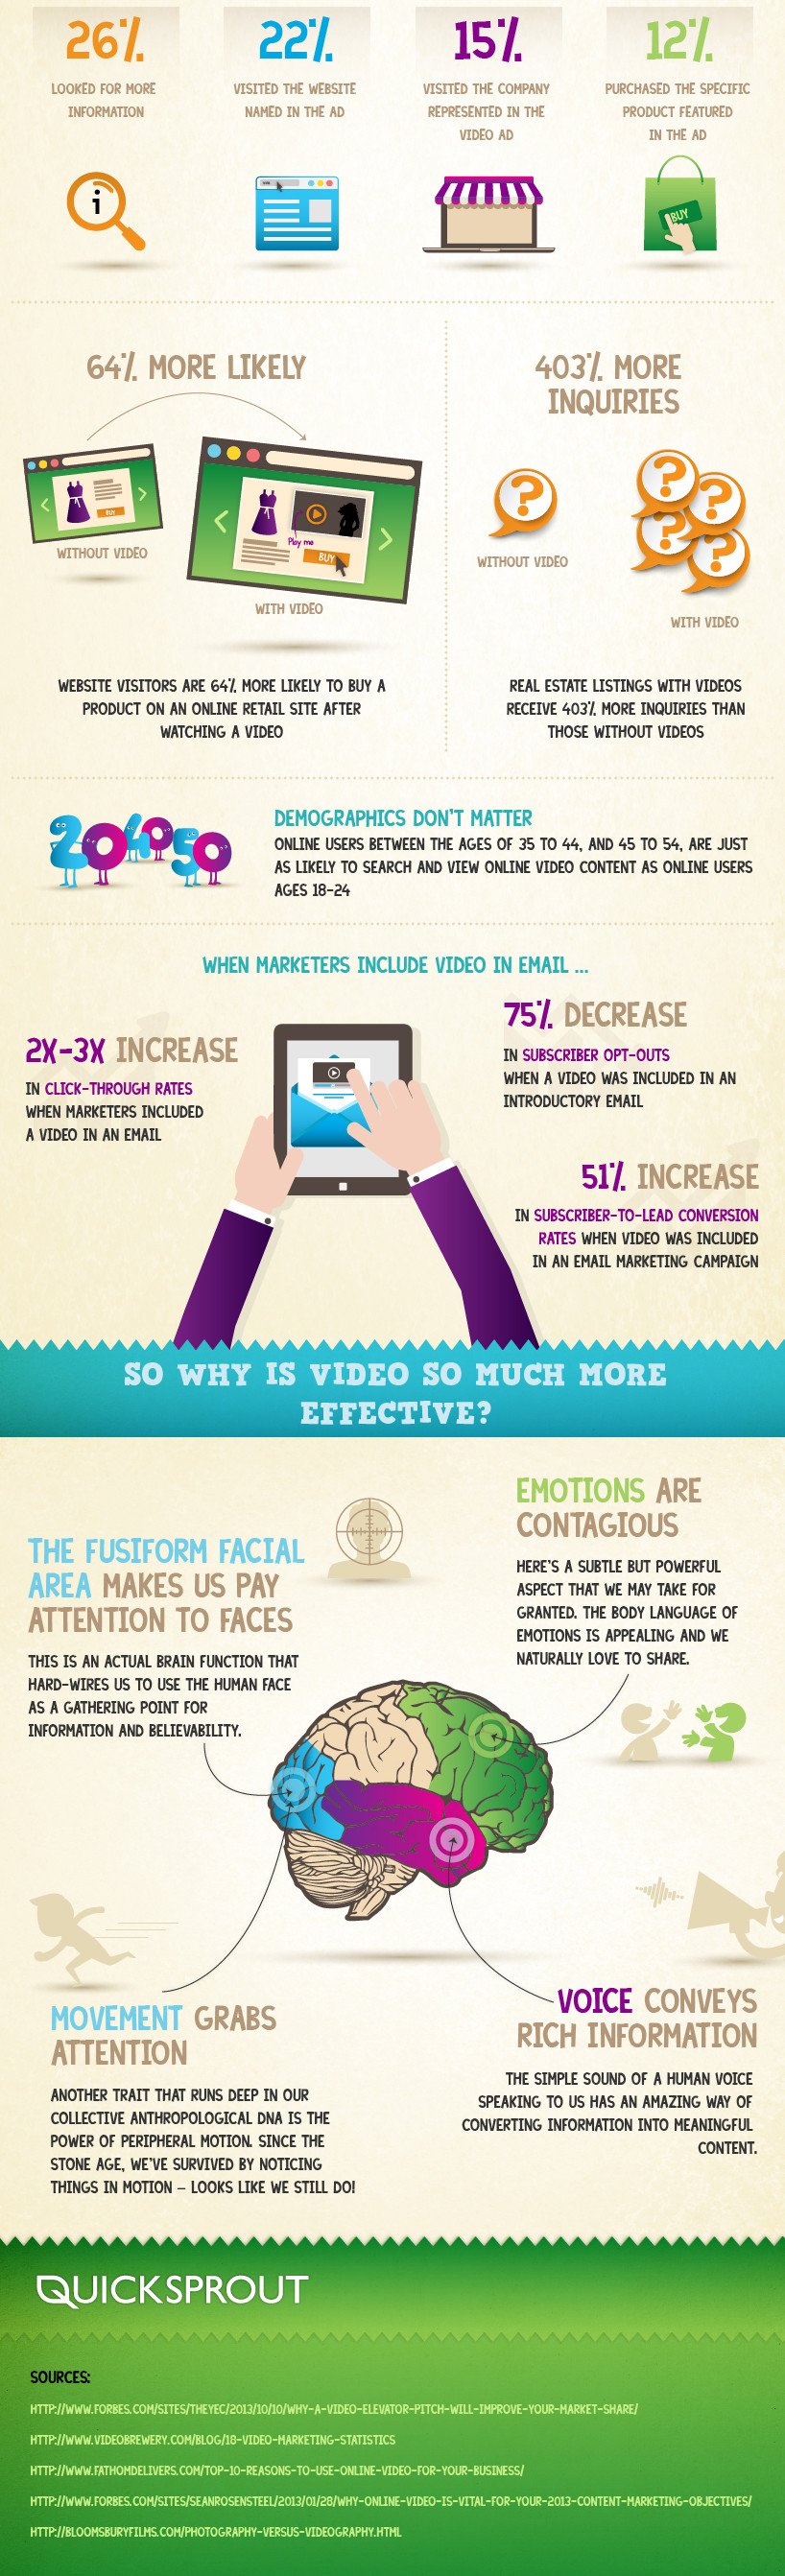 Infographic showing benefits of using video to promote your brand